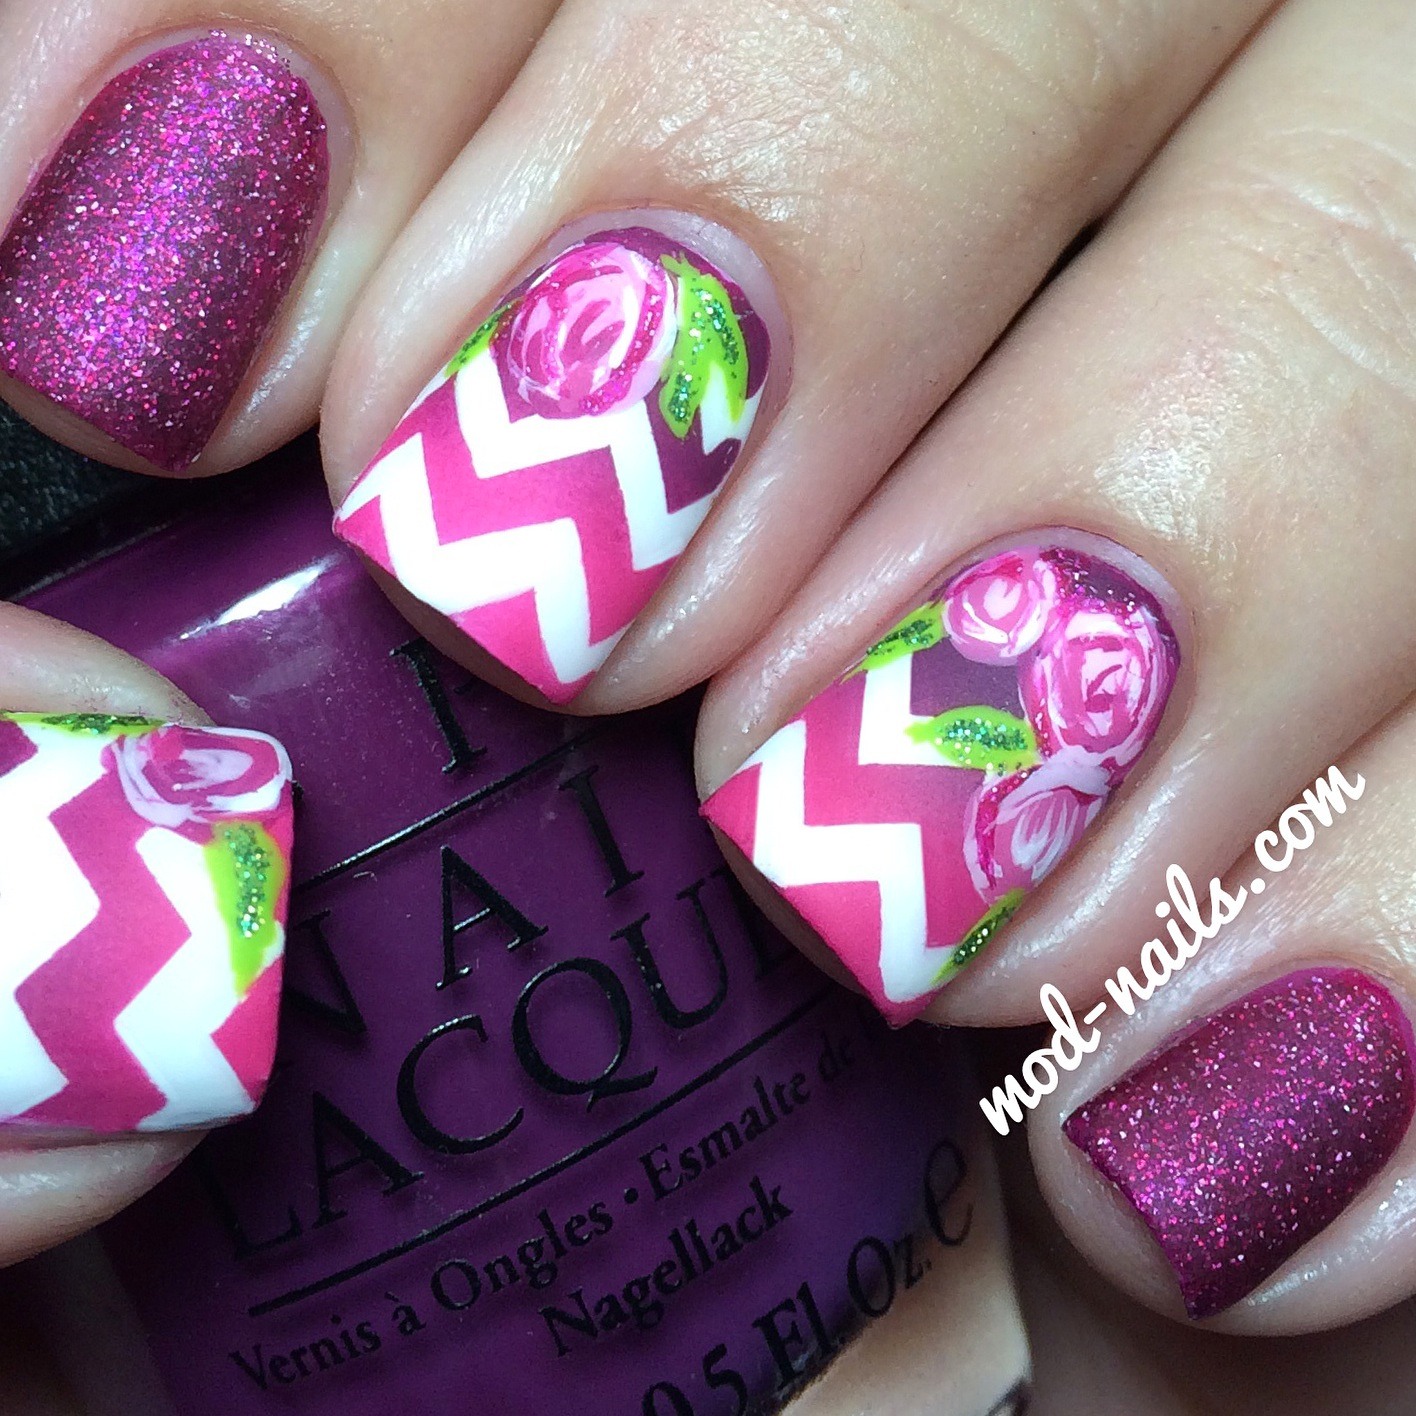 ModNails: HOW TO: MATTE CHEVRON AND ROSES NAIL ART